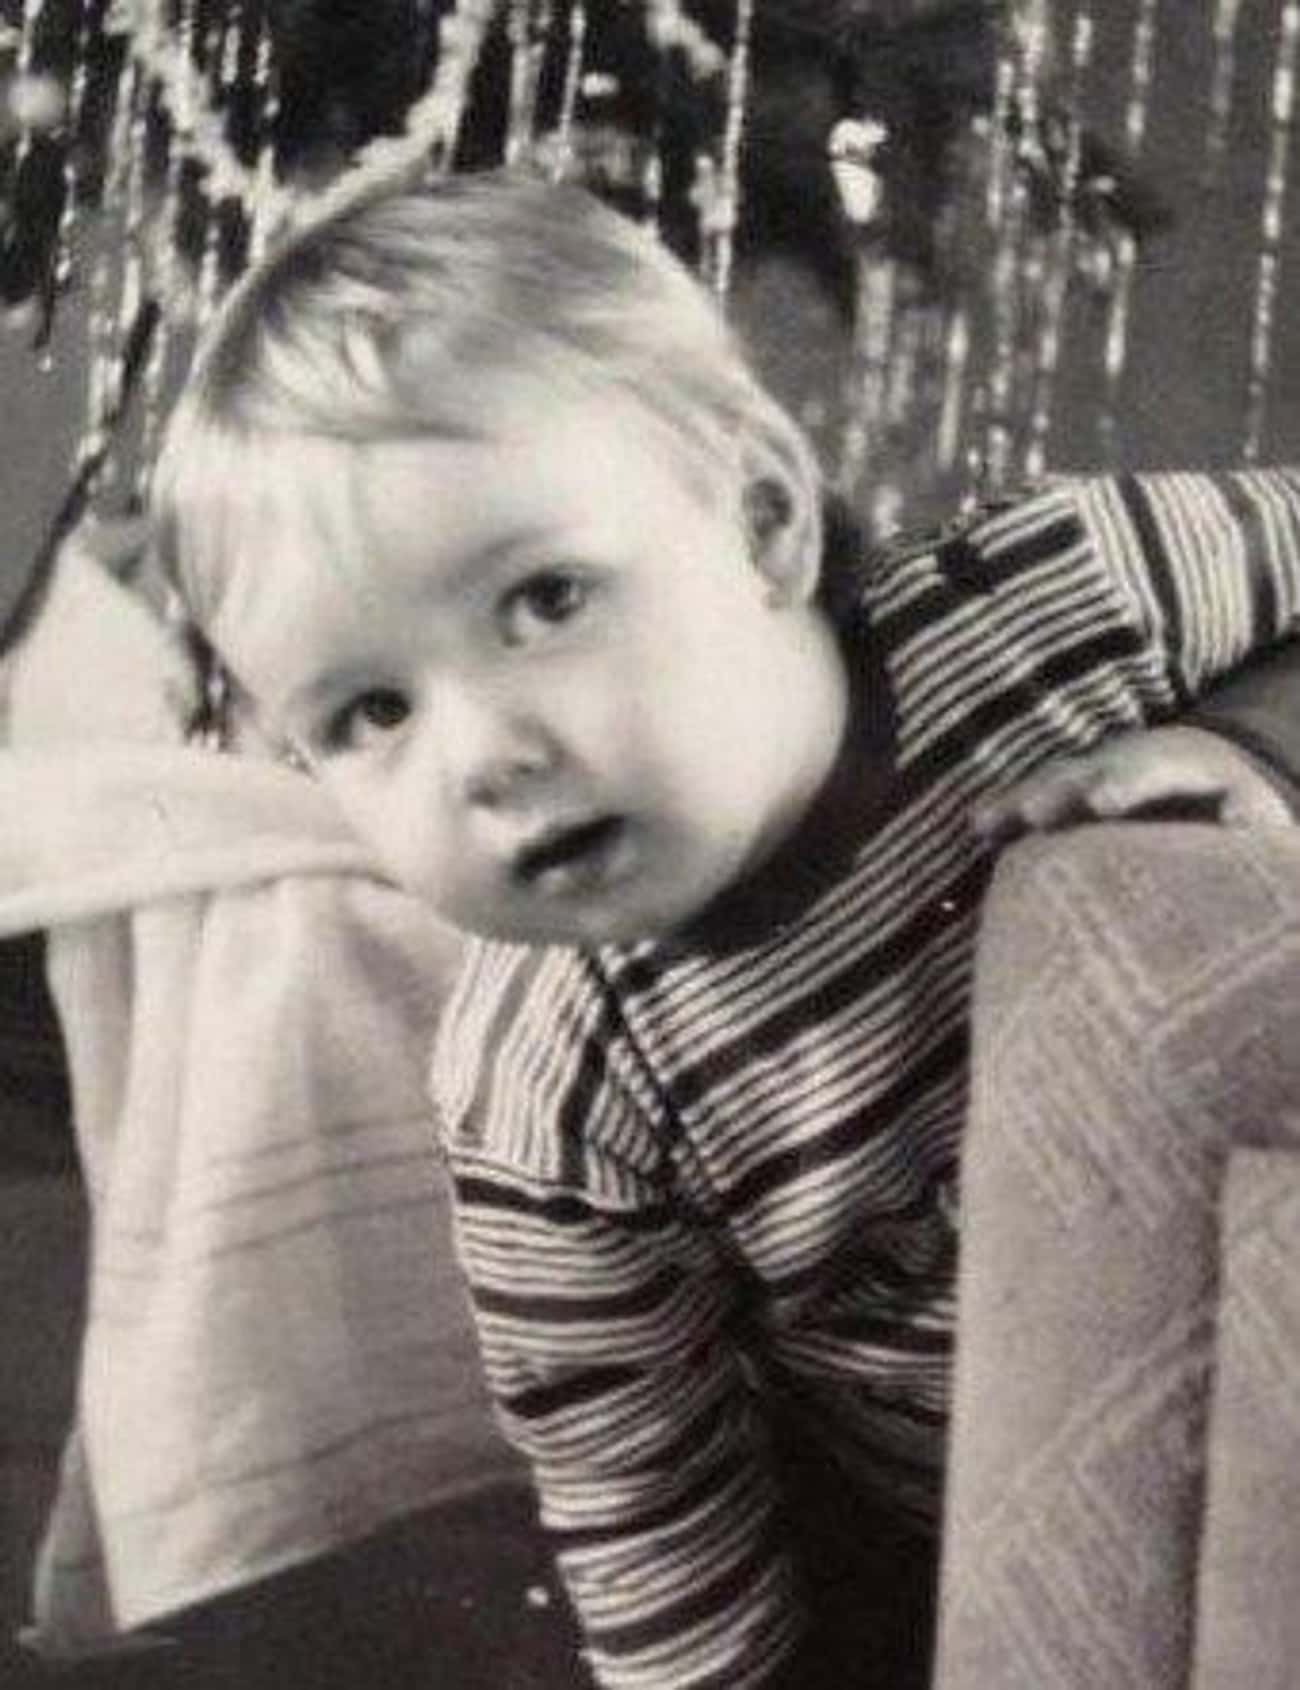 A Moment of Innocence Before P is listed (or ranked) 3 on the list Cute Babies Who Grew Up to Be Movie Stars